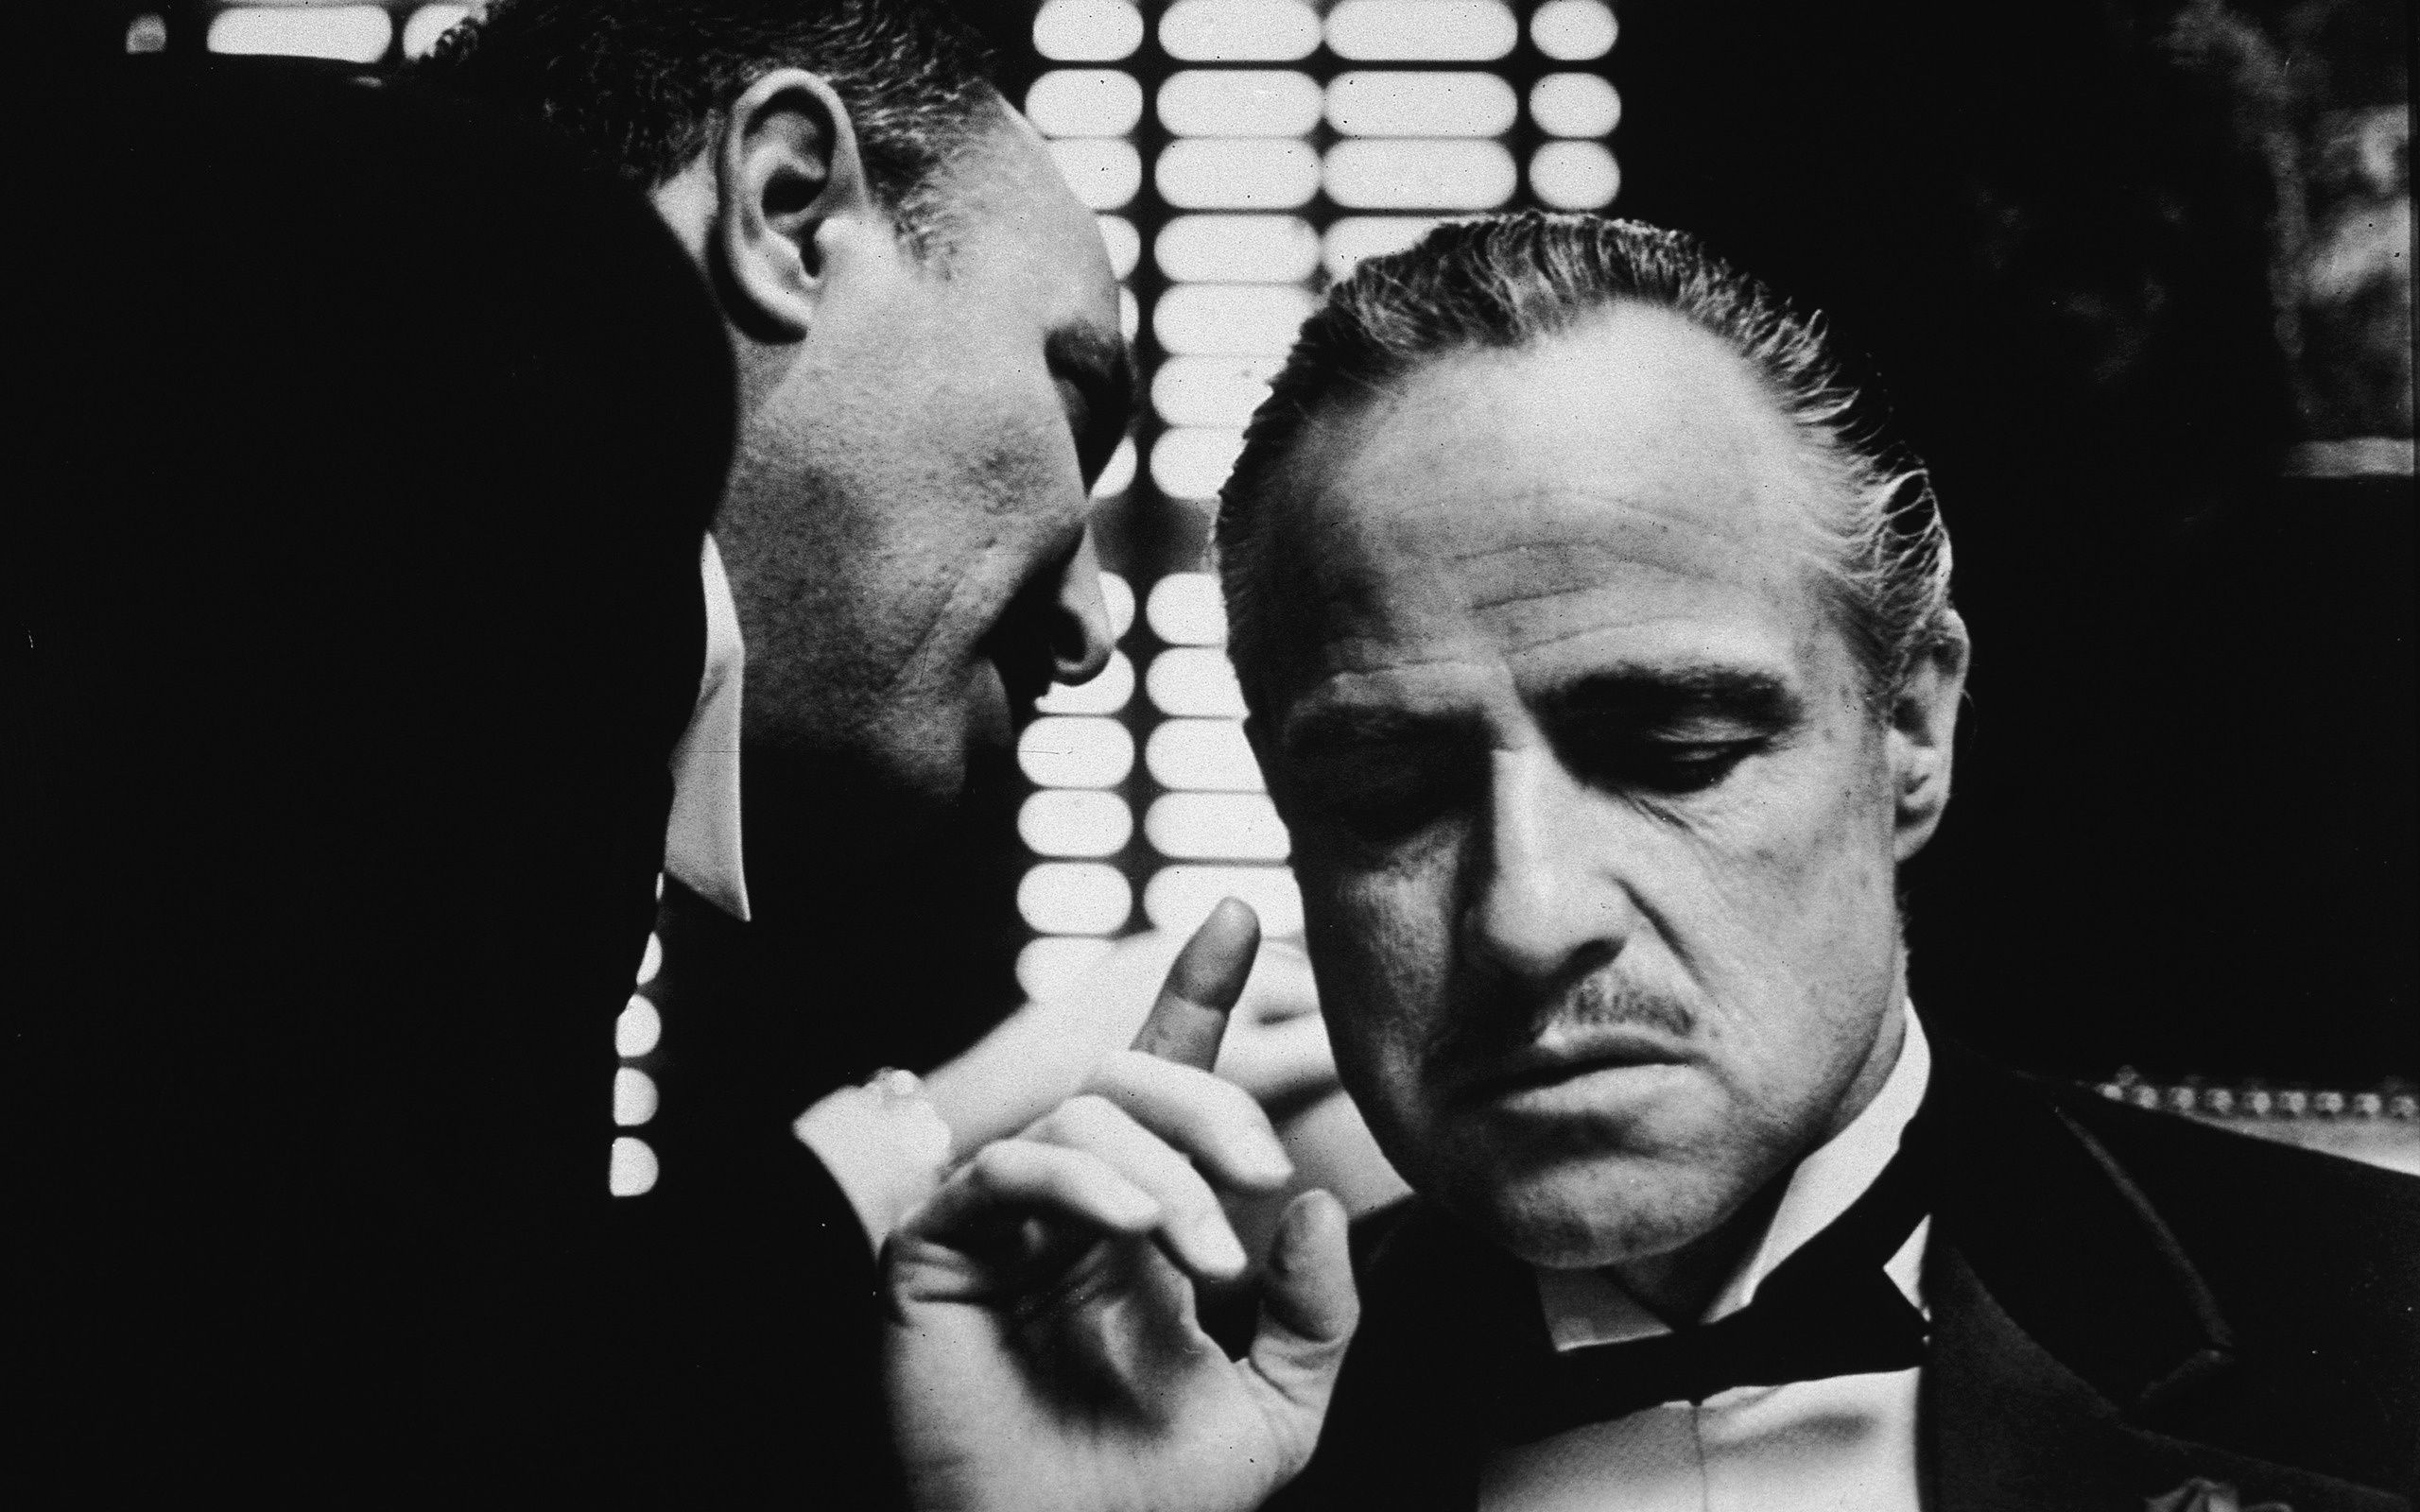 Vito Corleone Wallpaper Others Movies 2560x1600